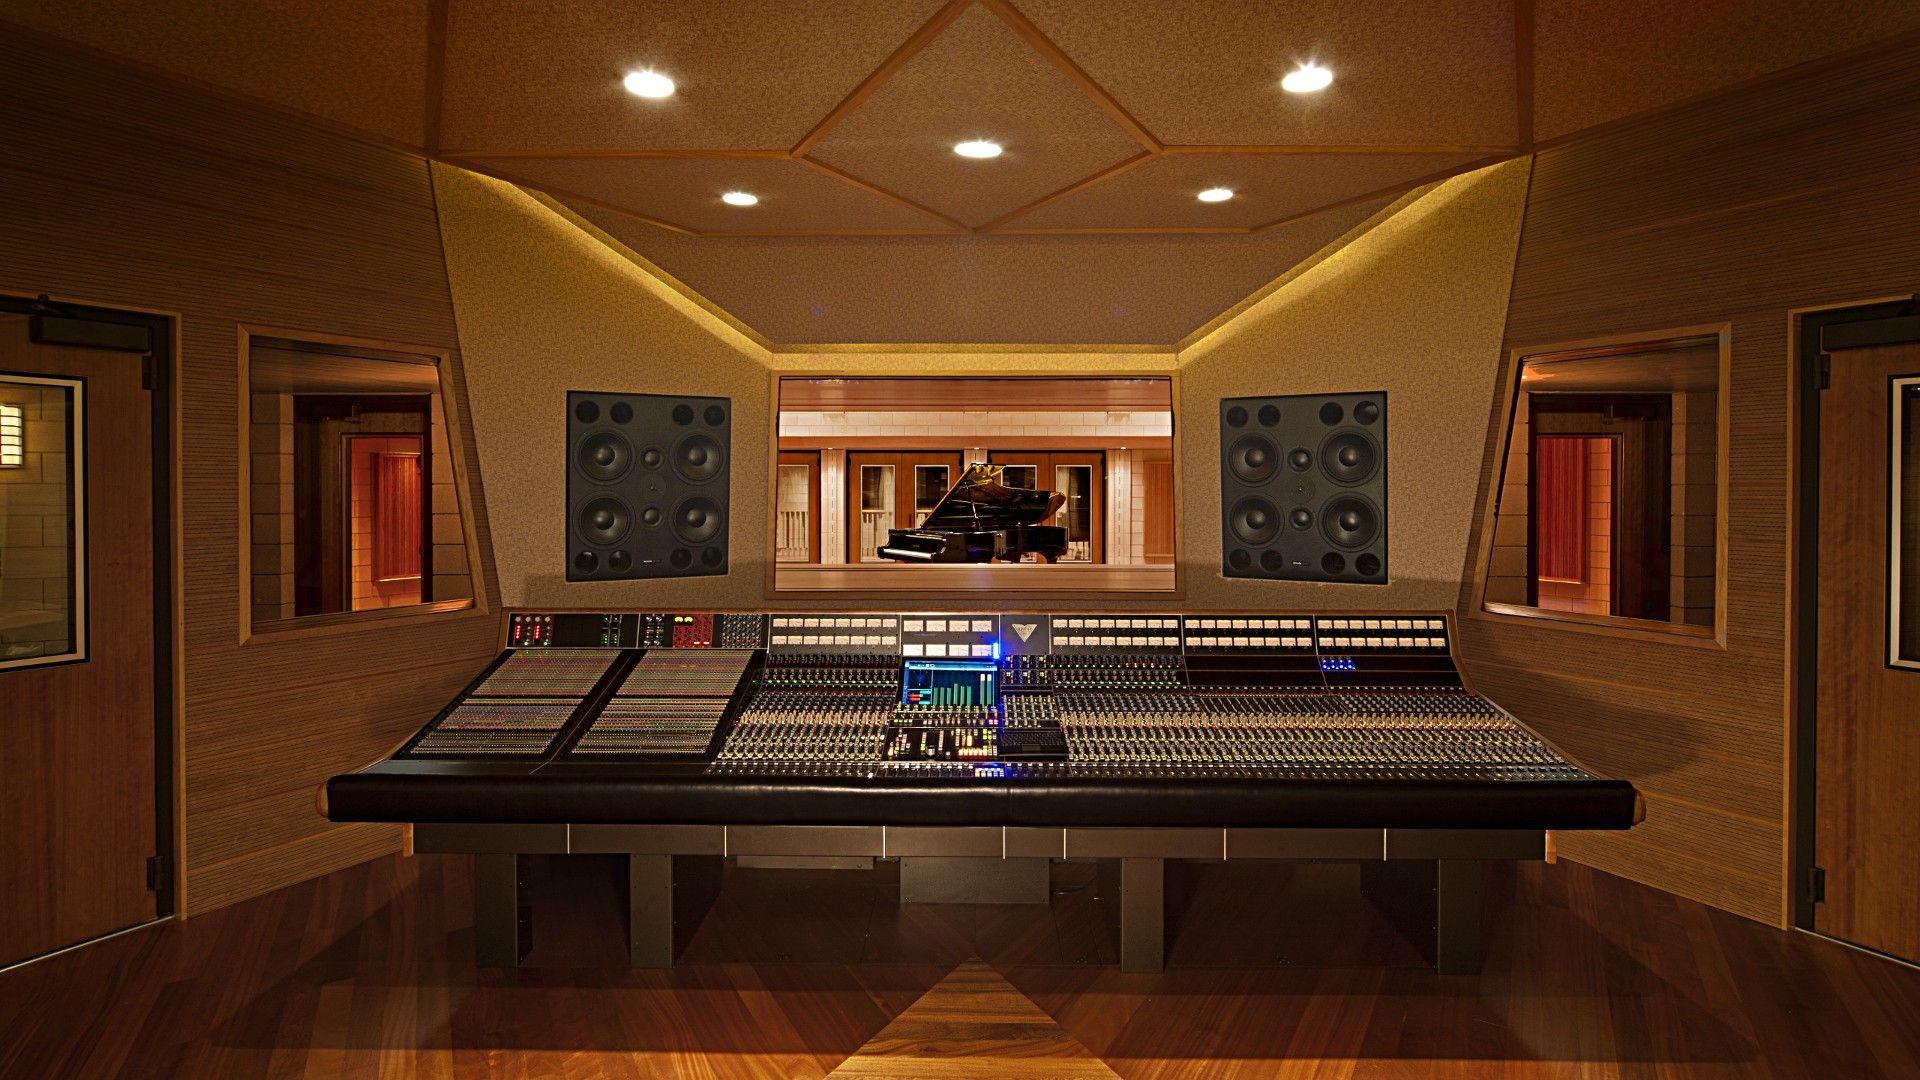 Astonishing Wow Big Expensive Studios Are No Longer Needed To Make Music Largest Home Design Picture Inspirations Pitcheantrous